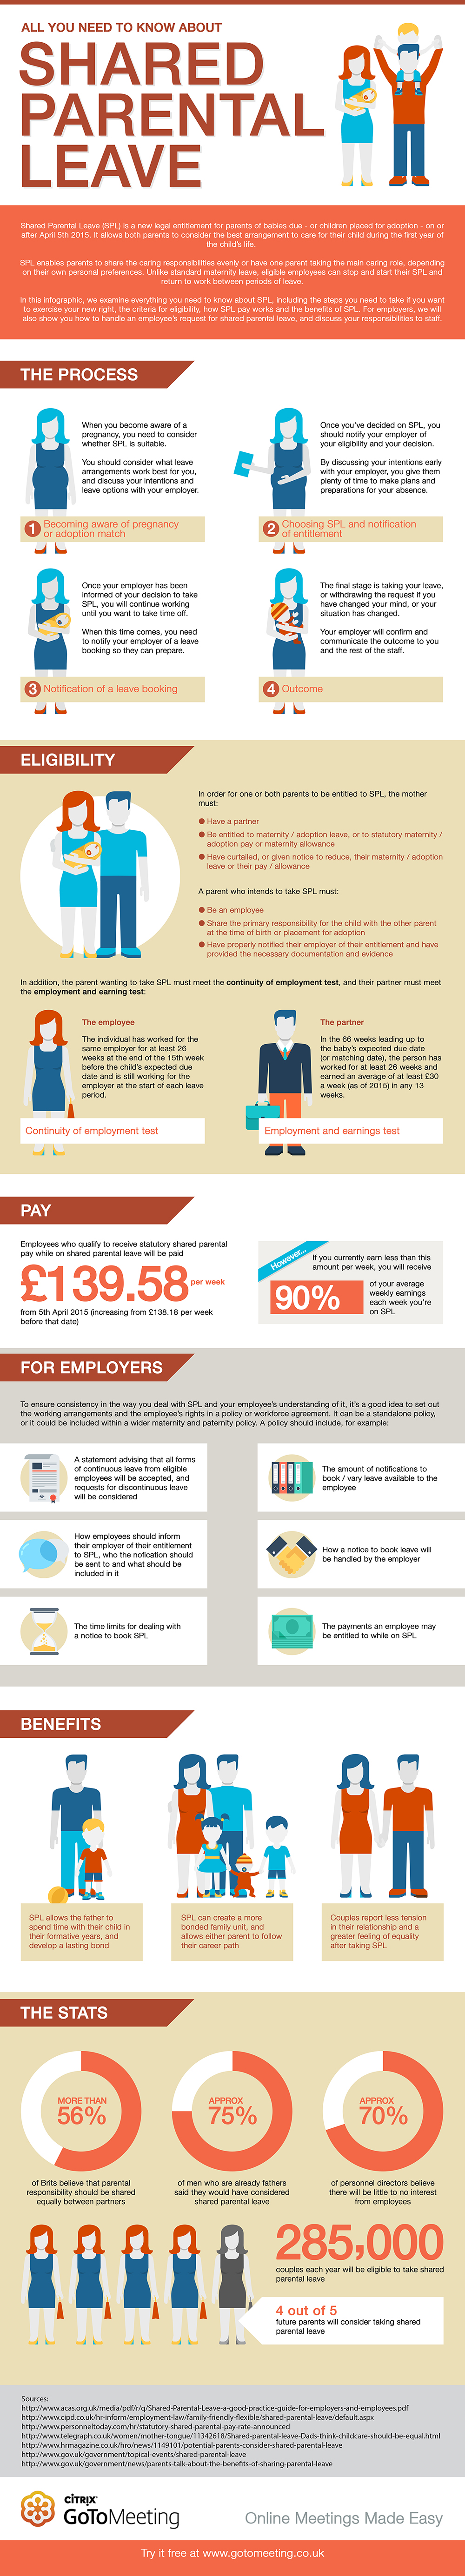 UK Shared Parental Leave_Final_Small